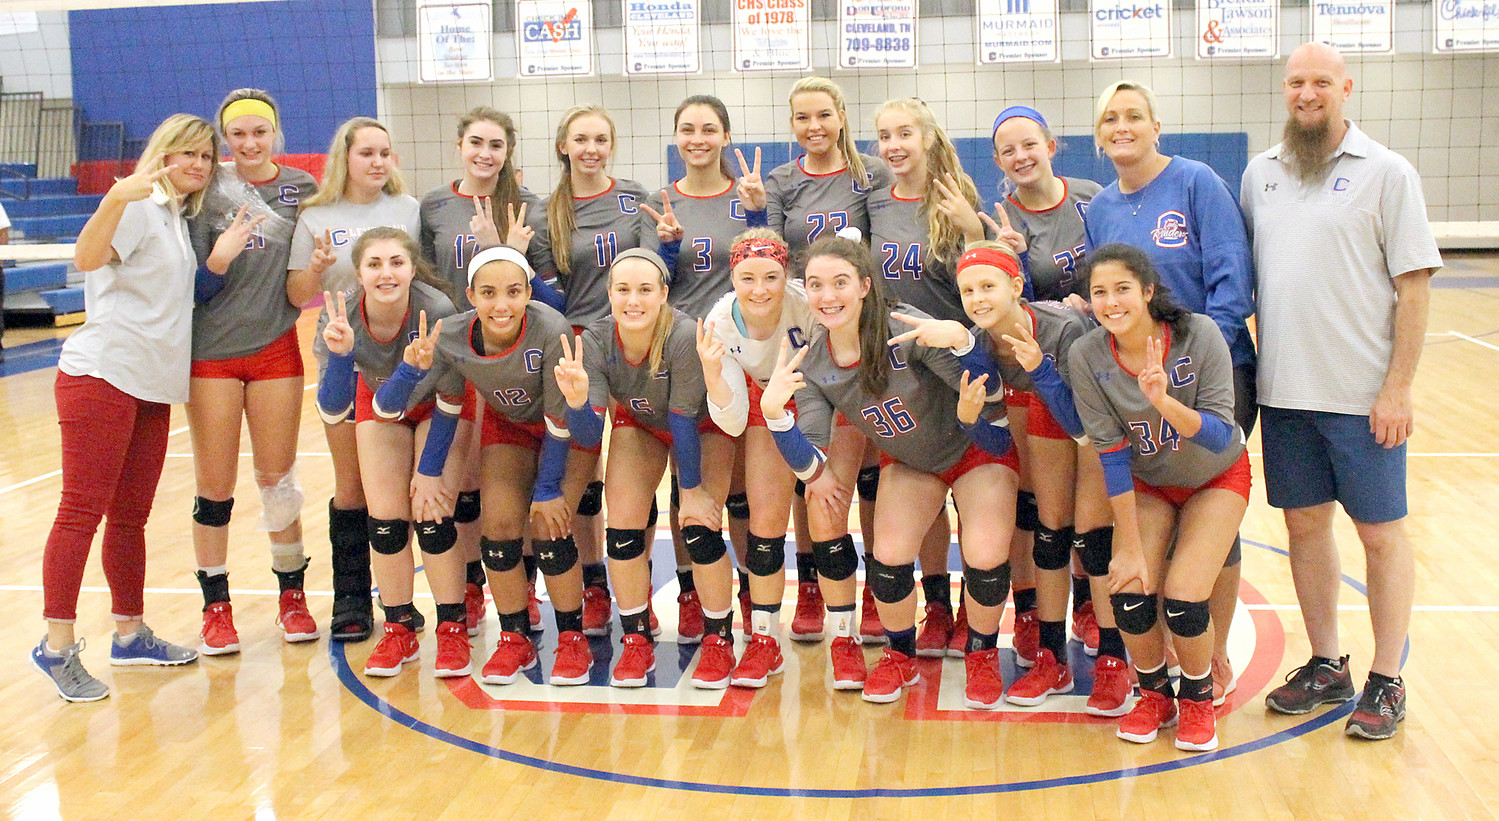 READY TO roll in their second straight TSSAA State Championships, the Cleveland High volleyball Lady Raiders will head to Murfreesboro Monday to prepare for Tuesday's opening matches. Coach Trish Flowers' squad are looking to improve on a Top 6 finish in last year's first state tournament berth in school history.